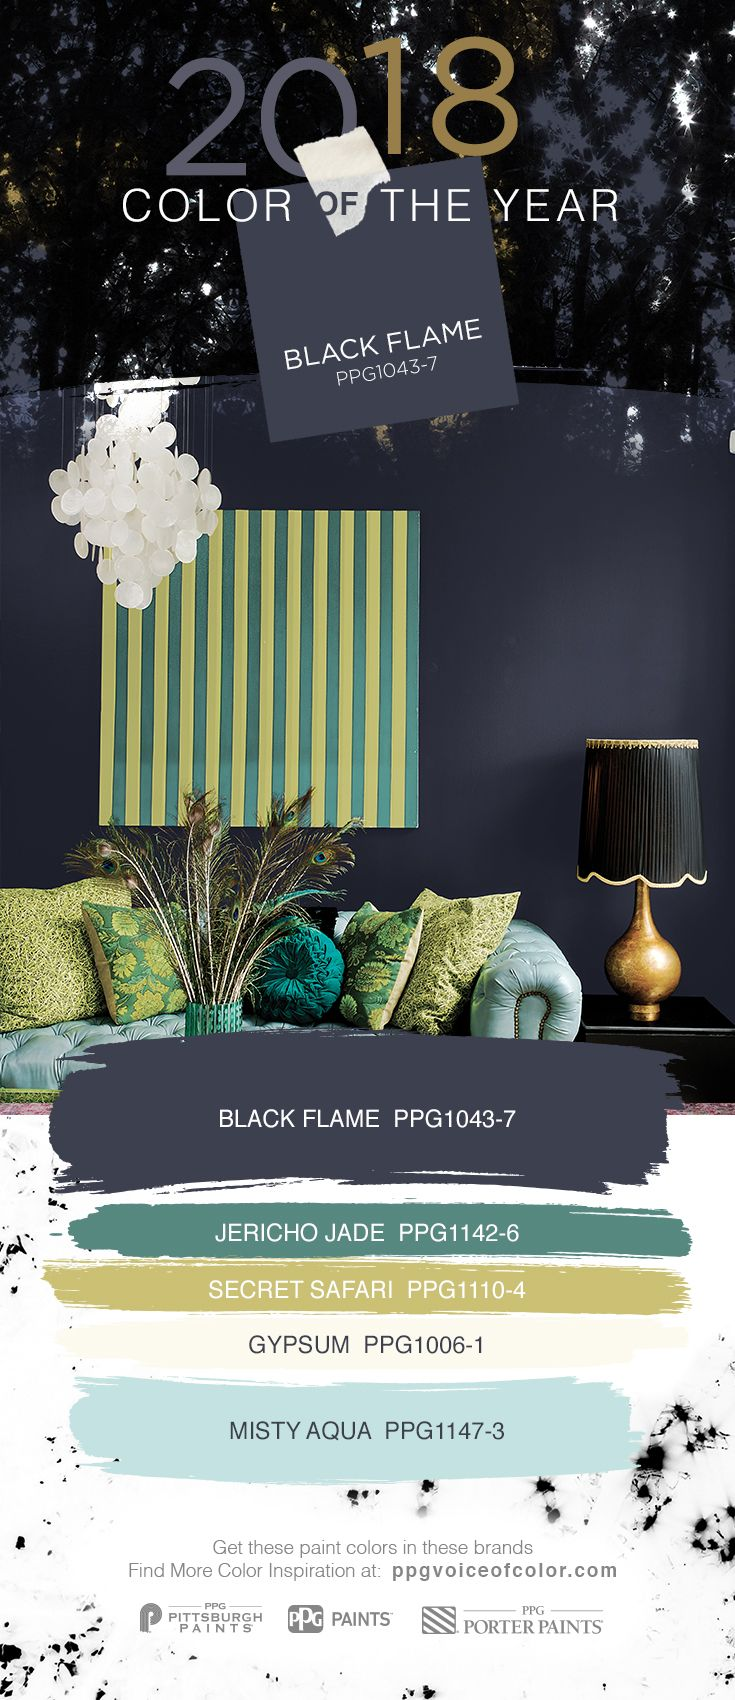 Best 50+ 2018 Paint Color of the Year - Black Flame images on ...